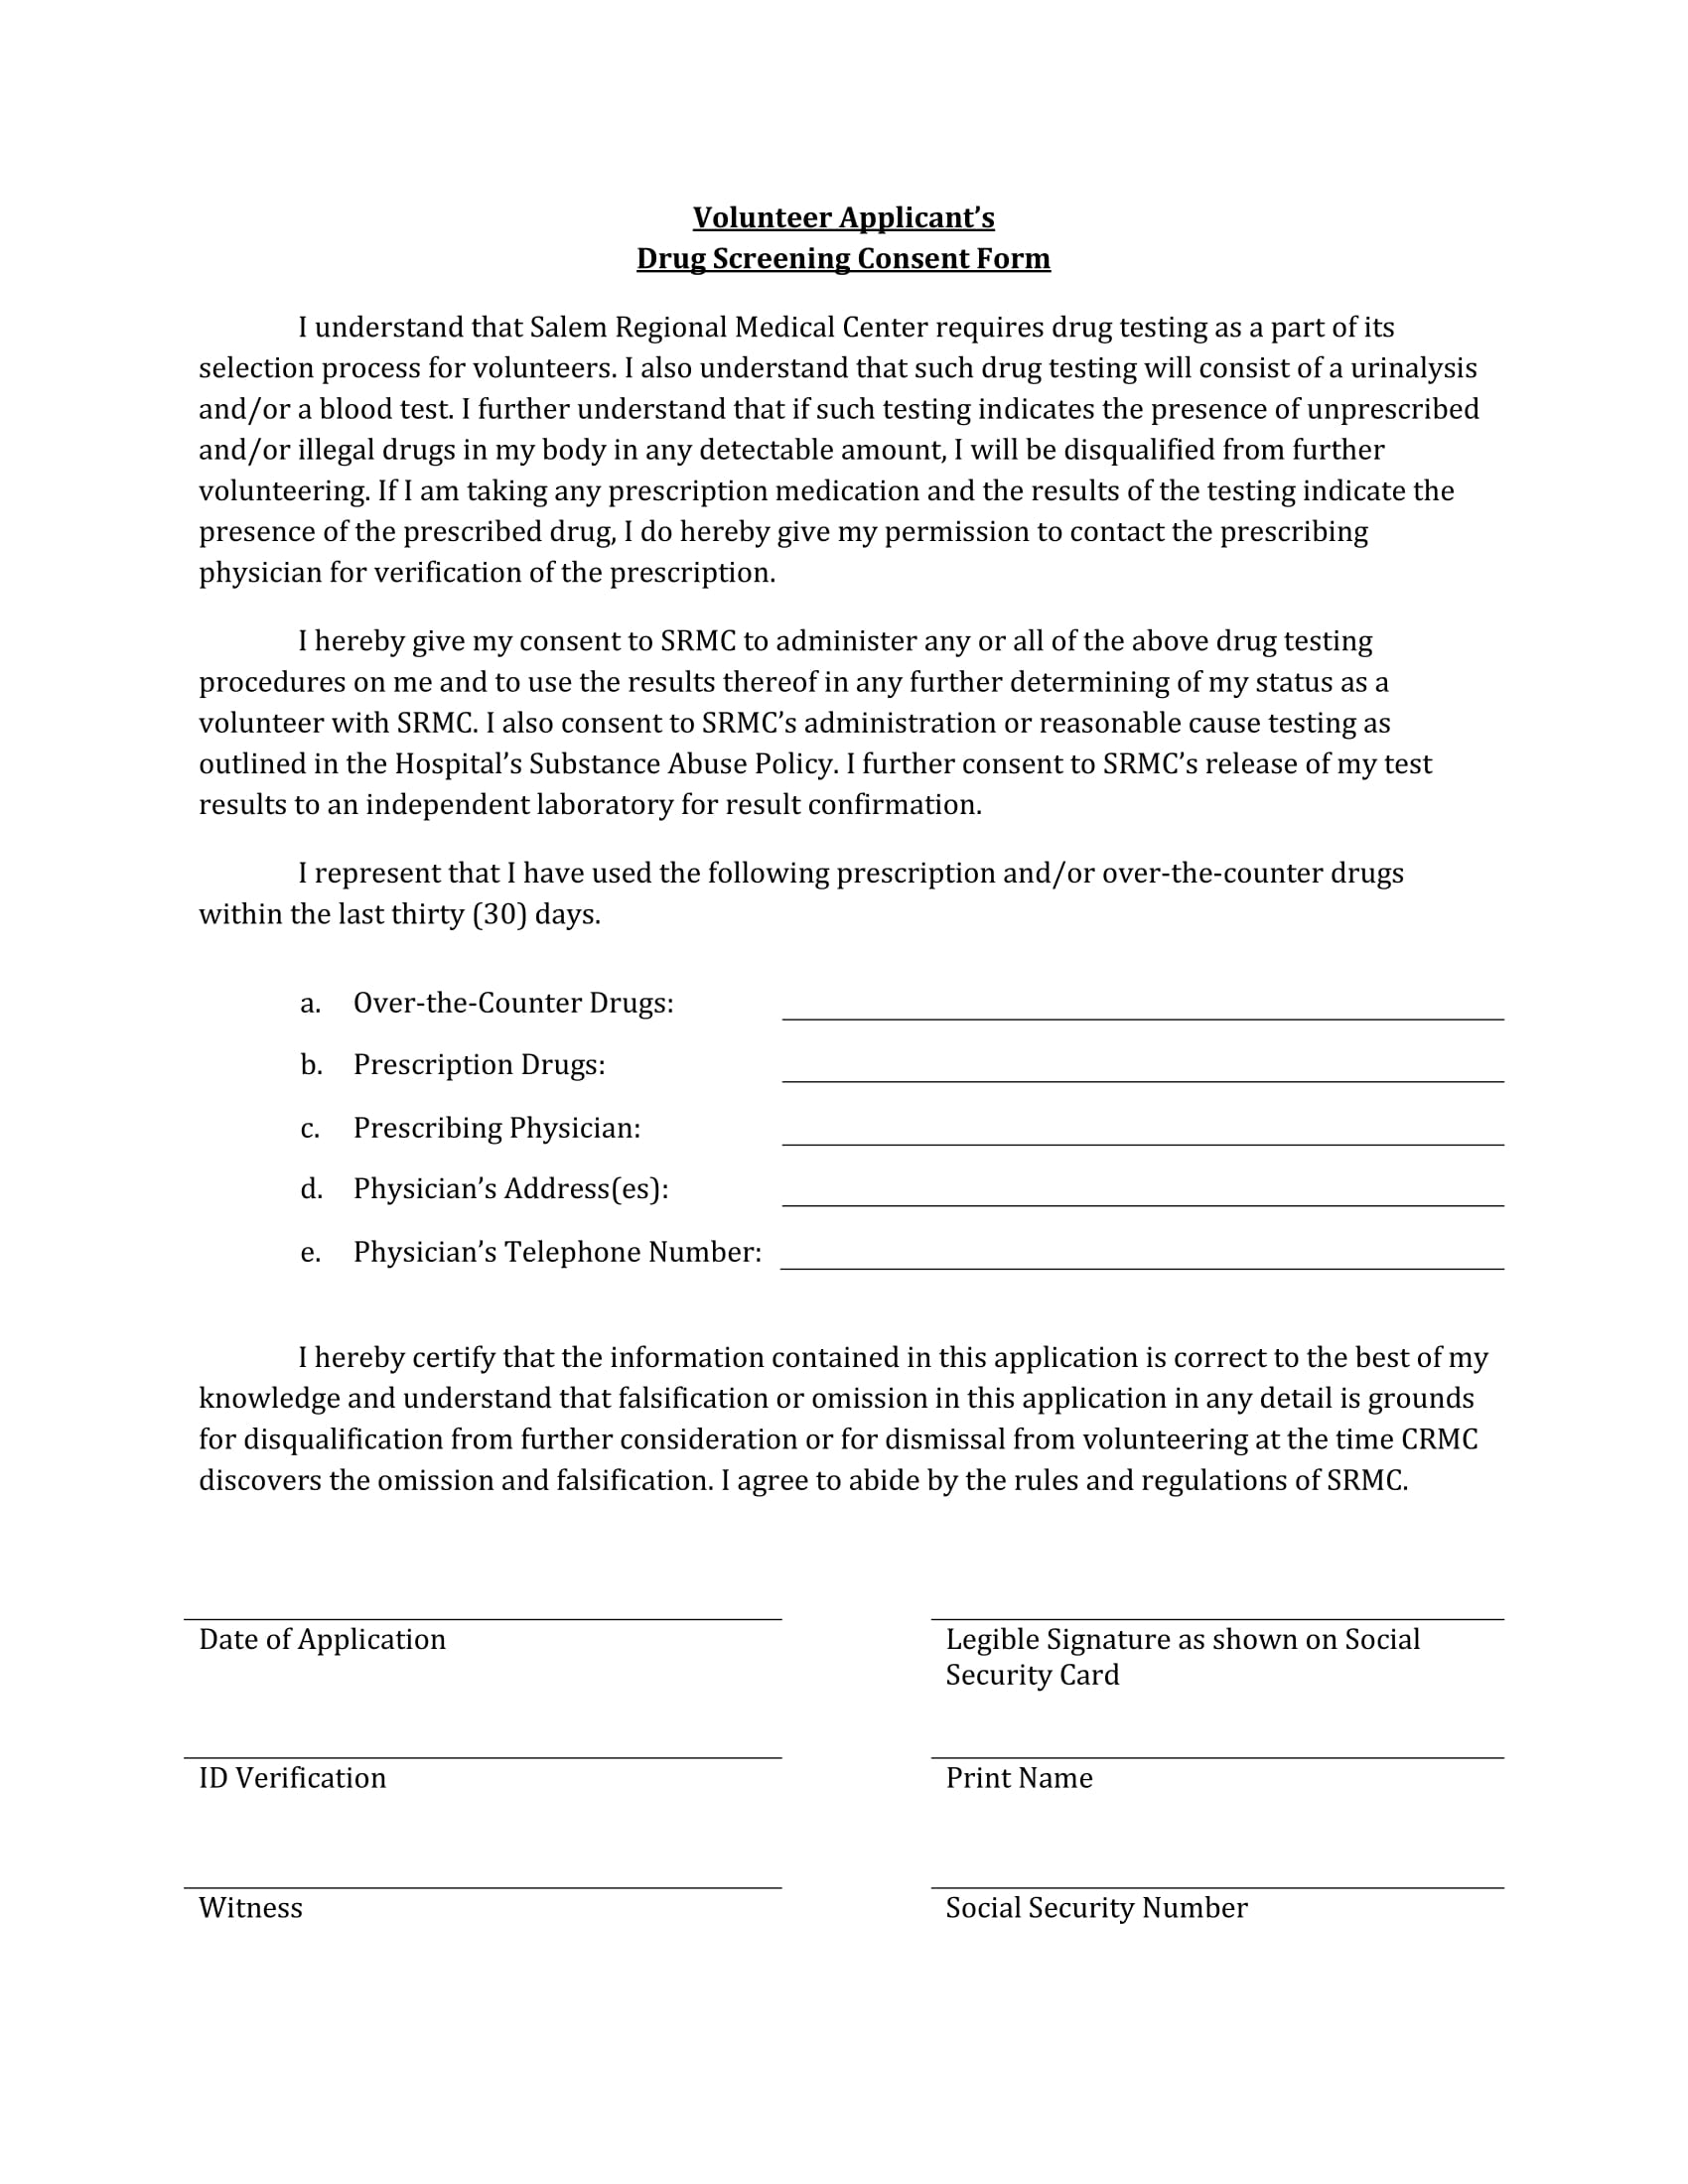 volunteer applicant drug test consent form 1